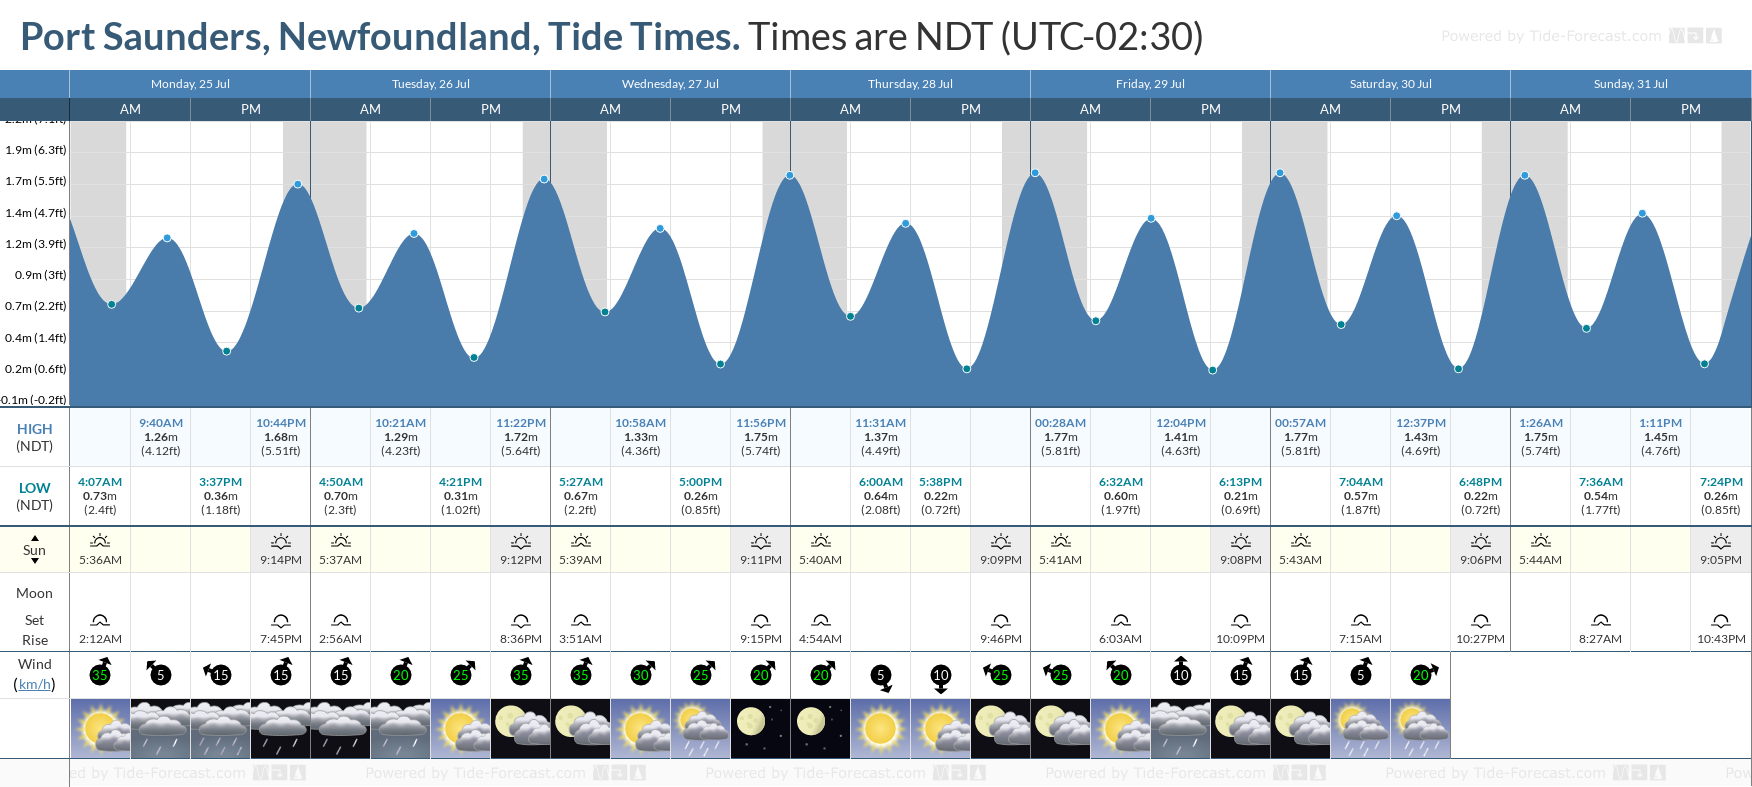 Port Saunders, Newfoundland Tide Chart including high and low tide tide times for the next 7 days